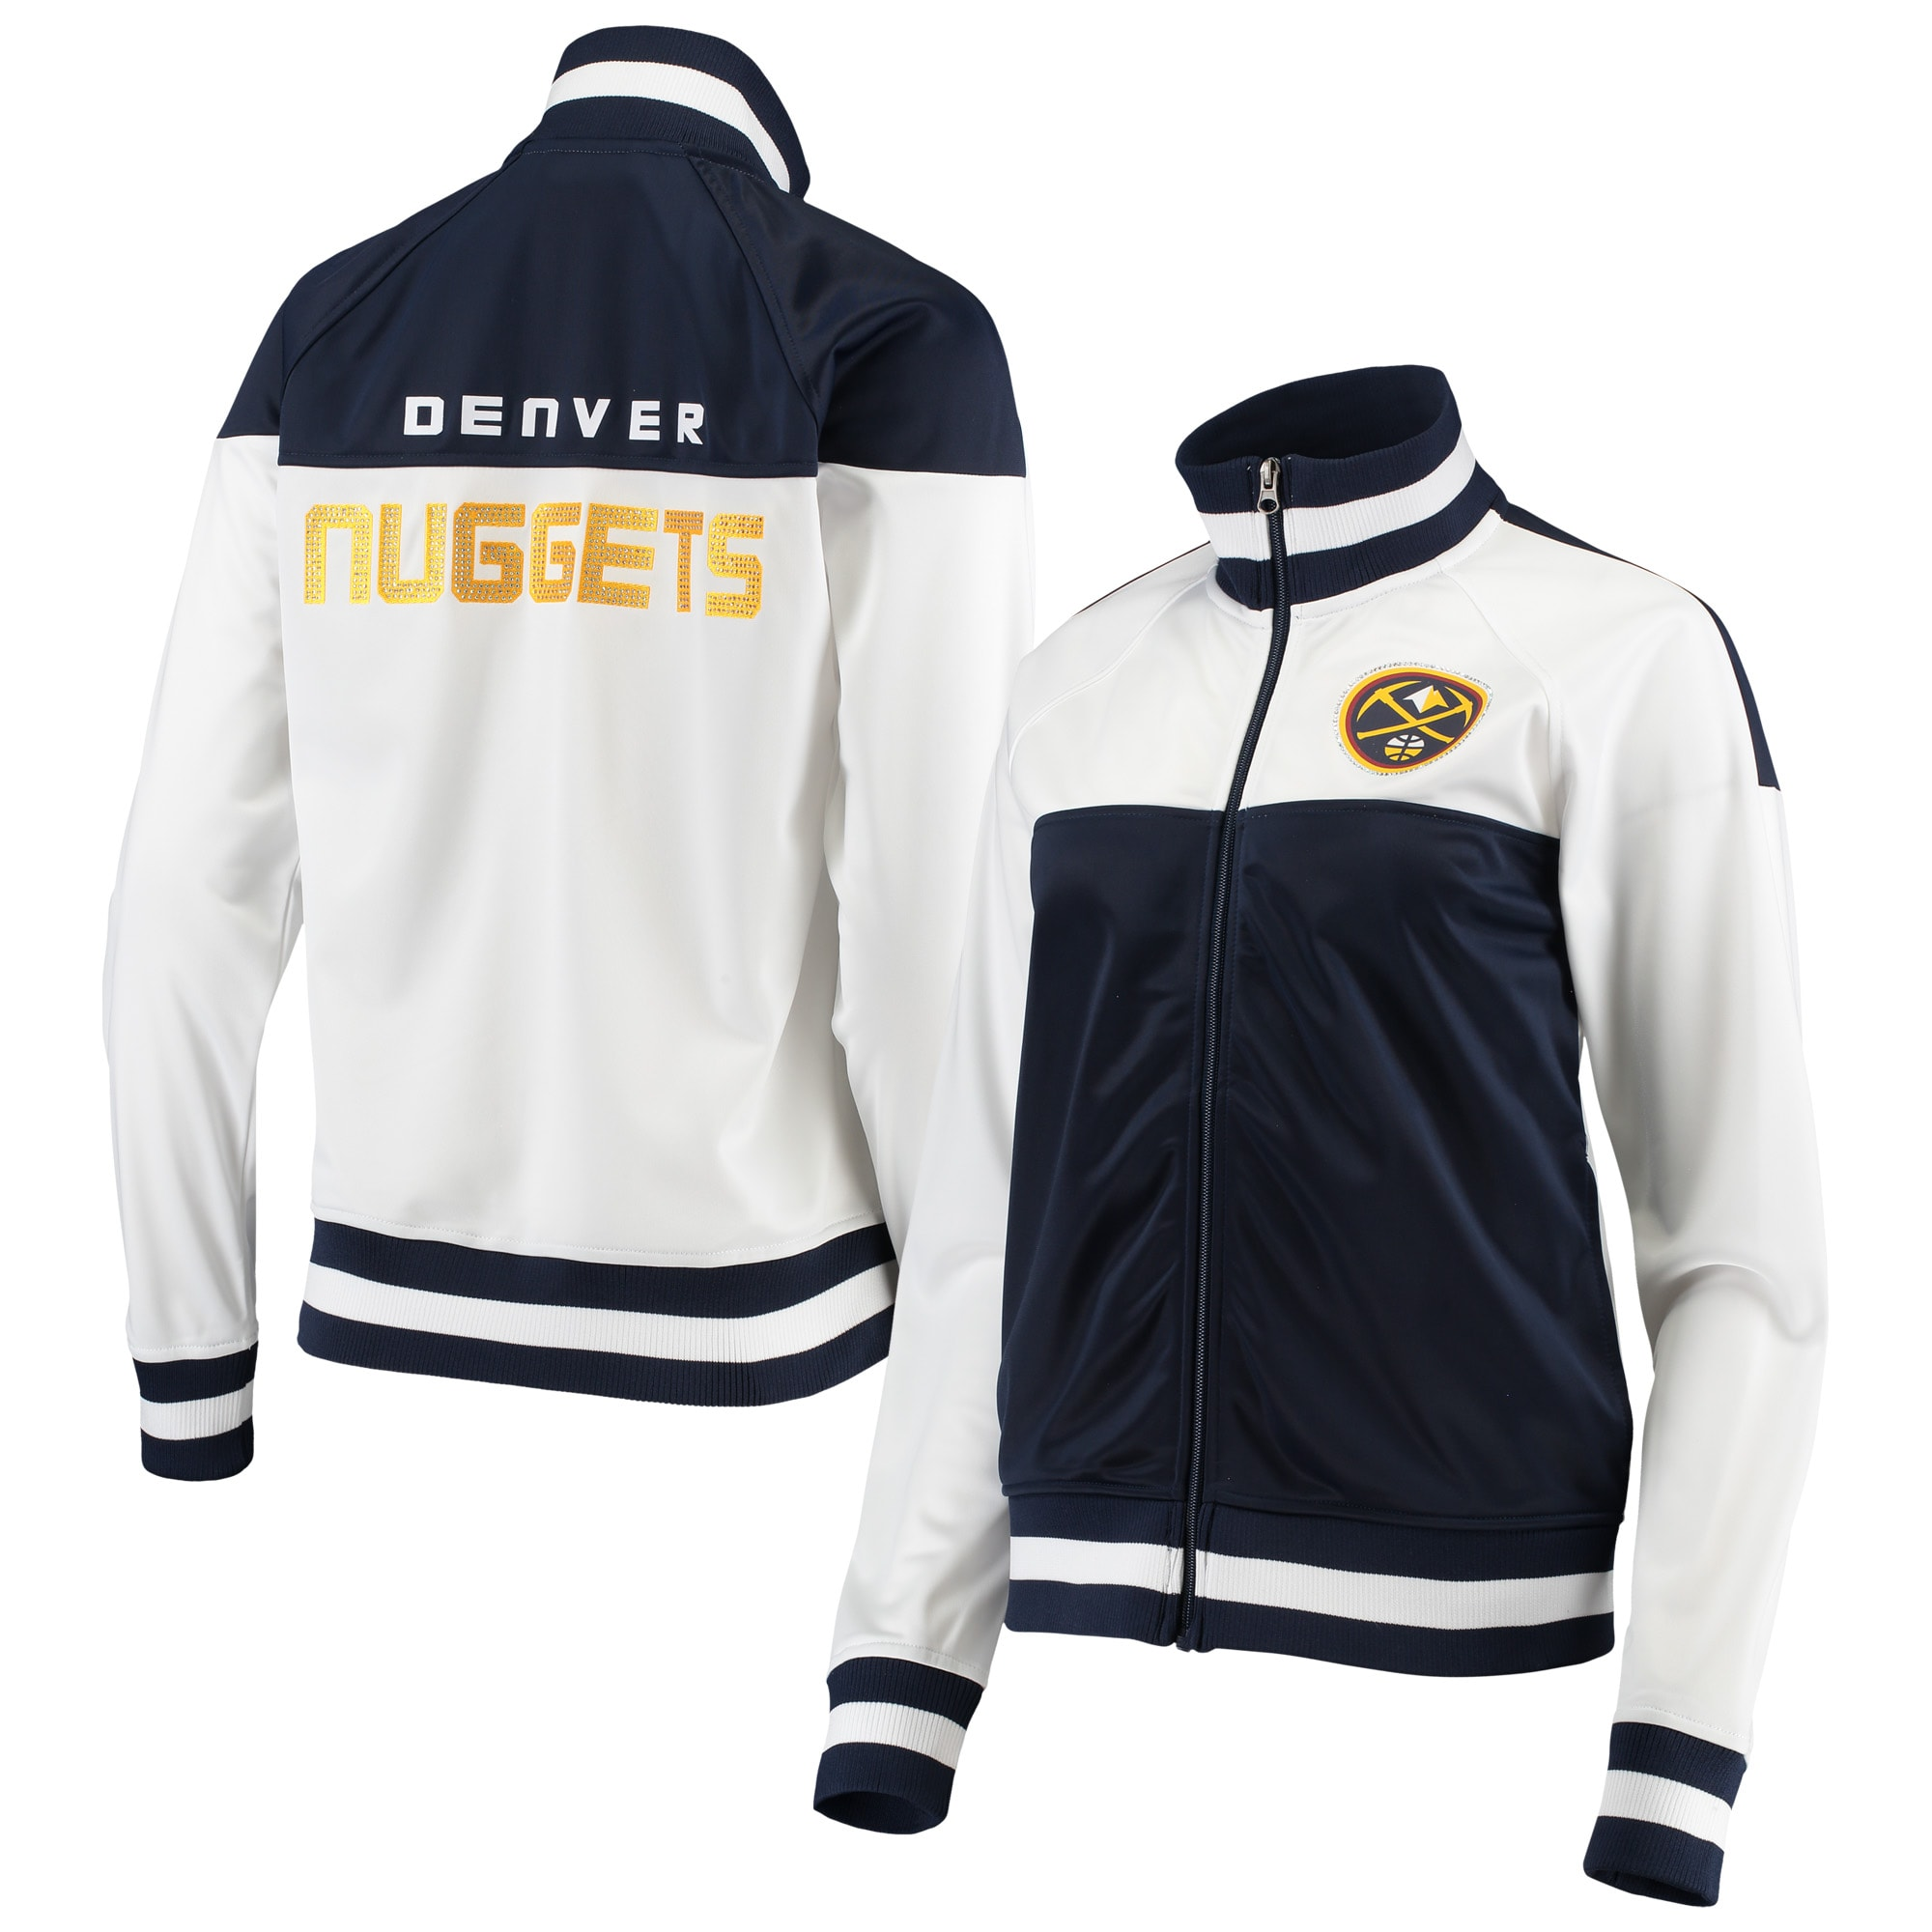 Denver Nuggets G-III 4Her by Carl Banks Women's Tip Off Rhinestone Tricot Full-Zip Track Jacket - White/Navy